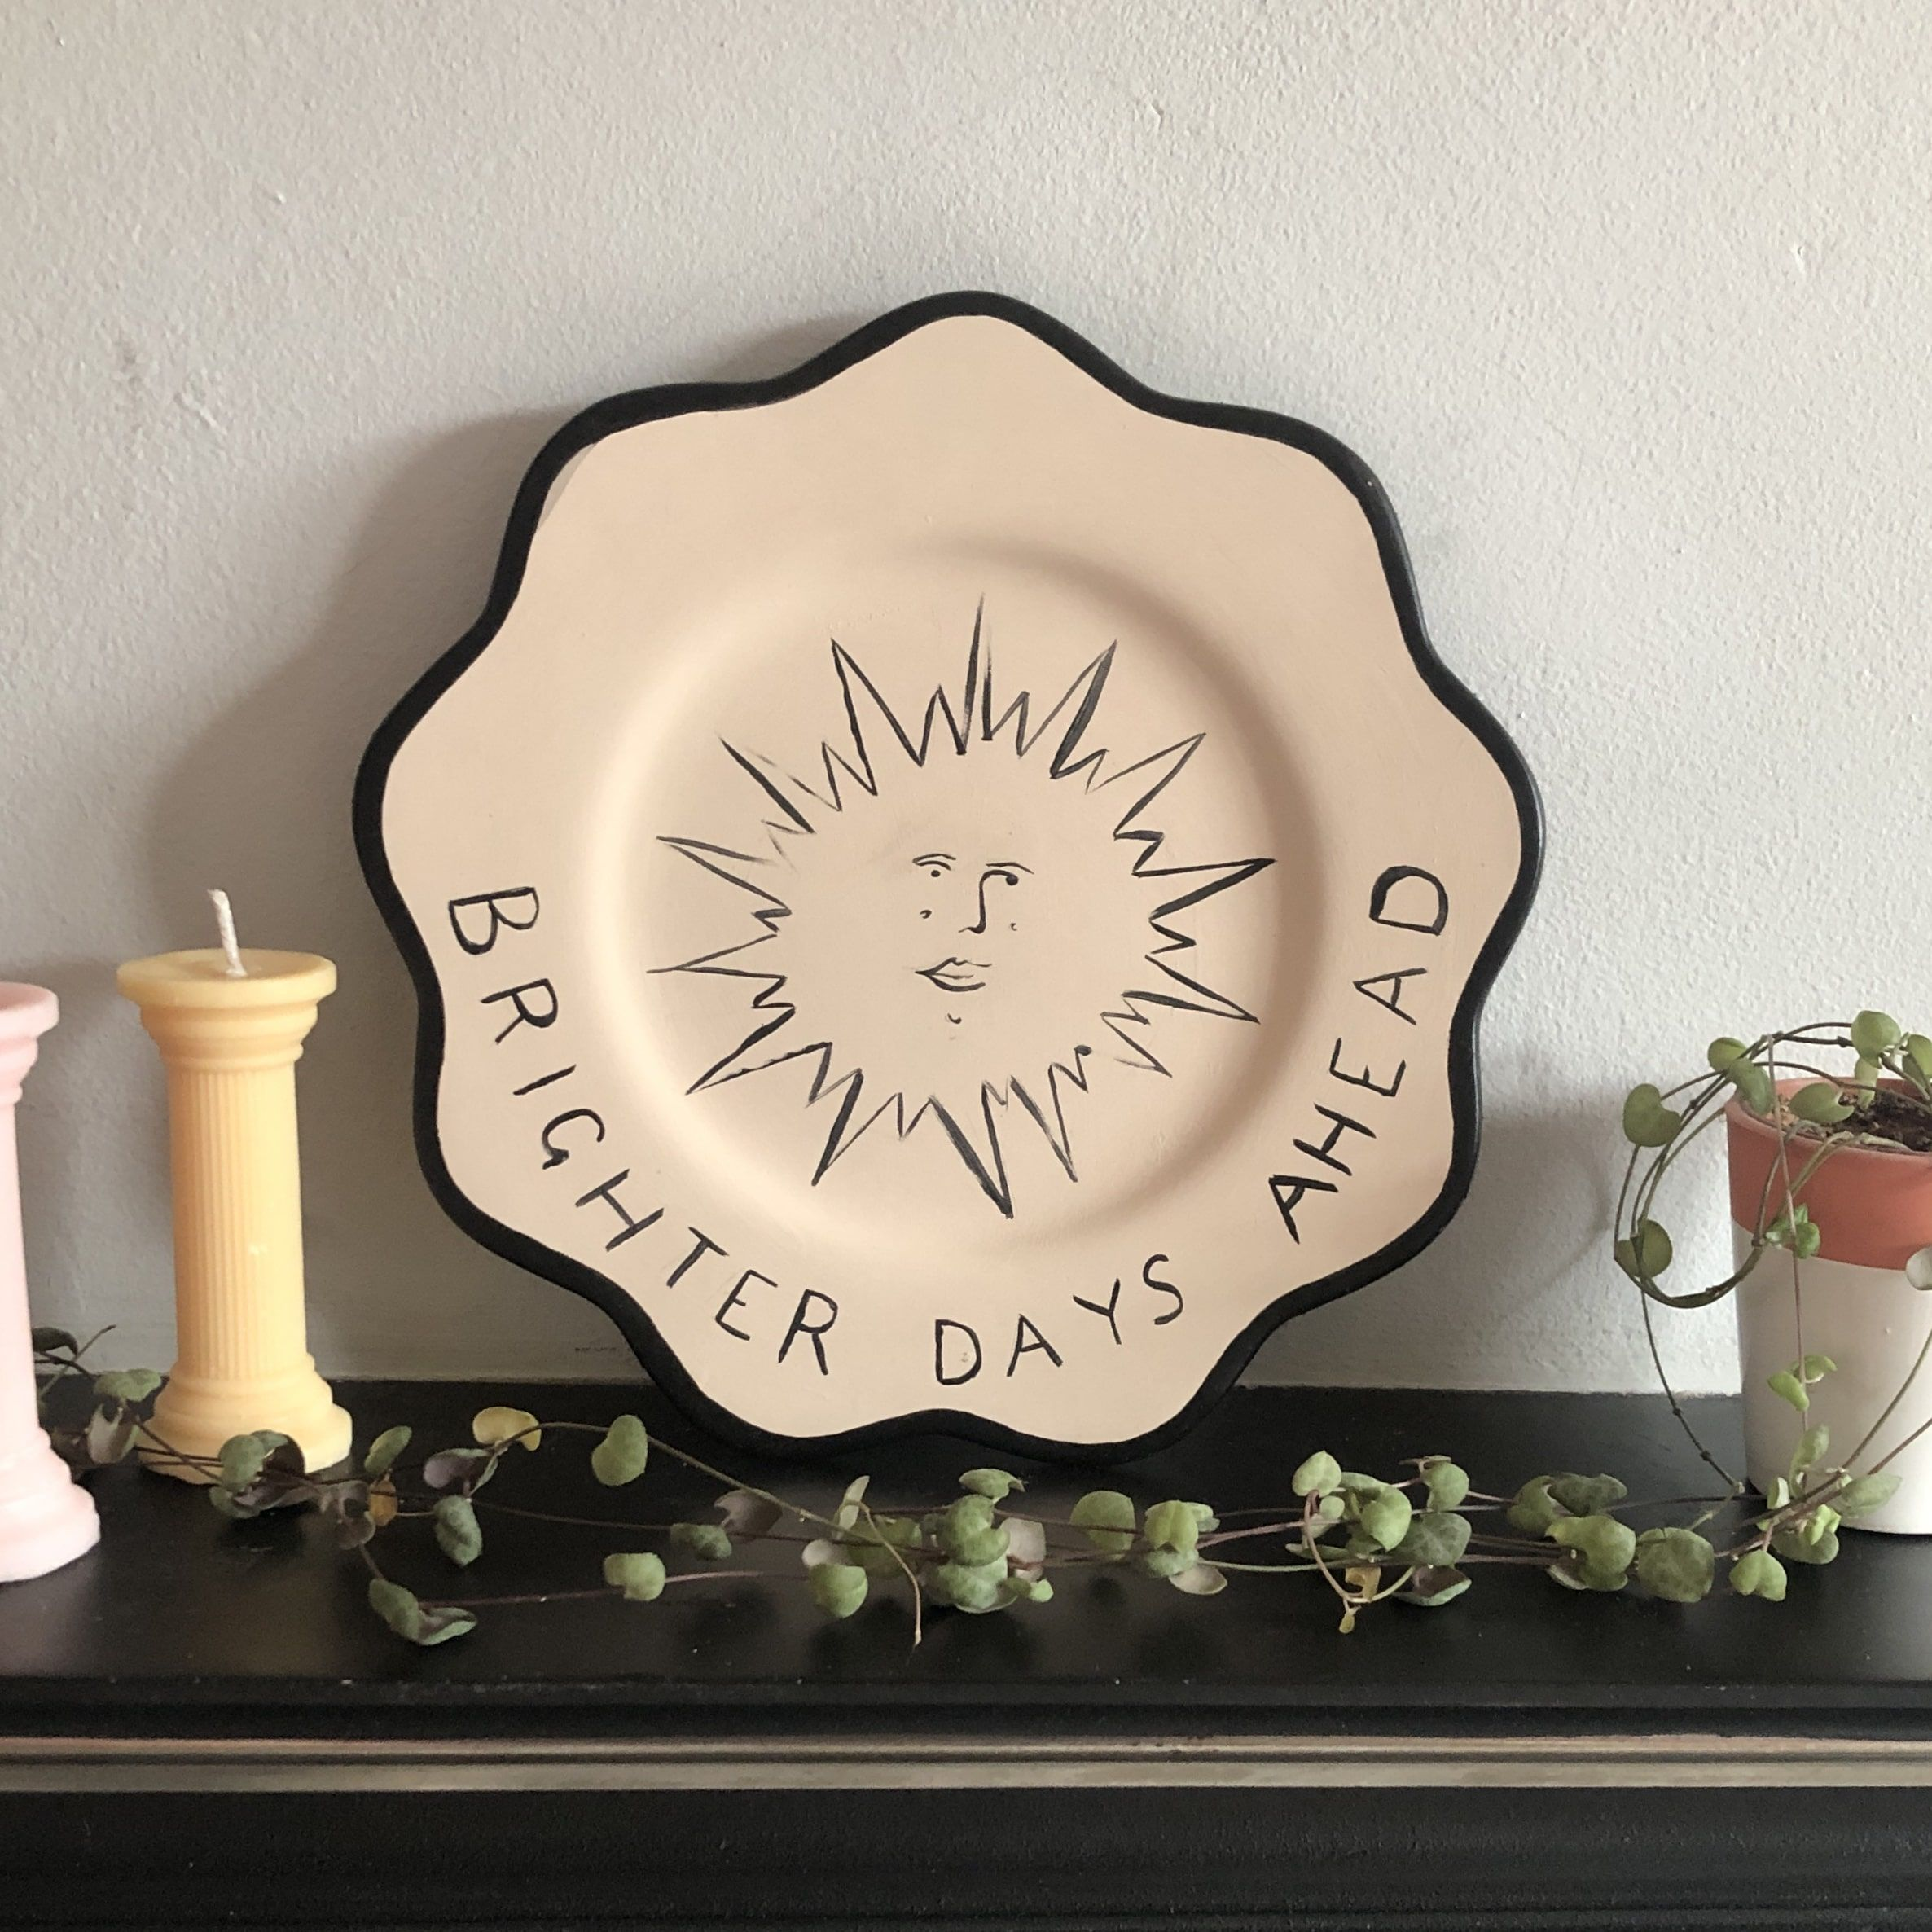 Brighter Days Ahead - Hand-painted decorative scalloped plate